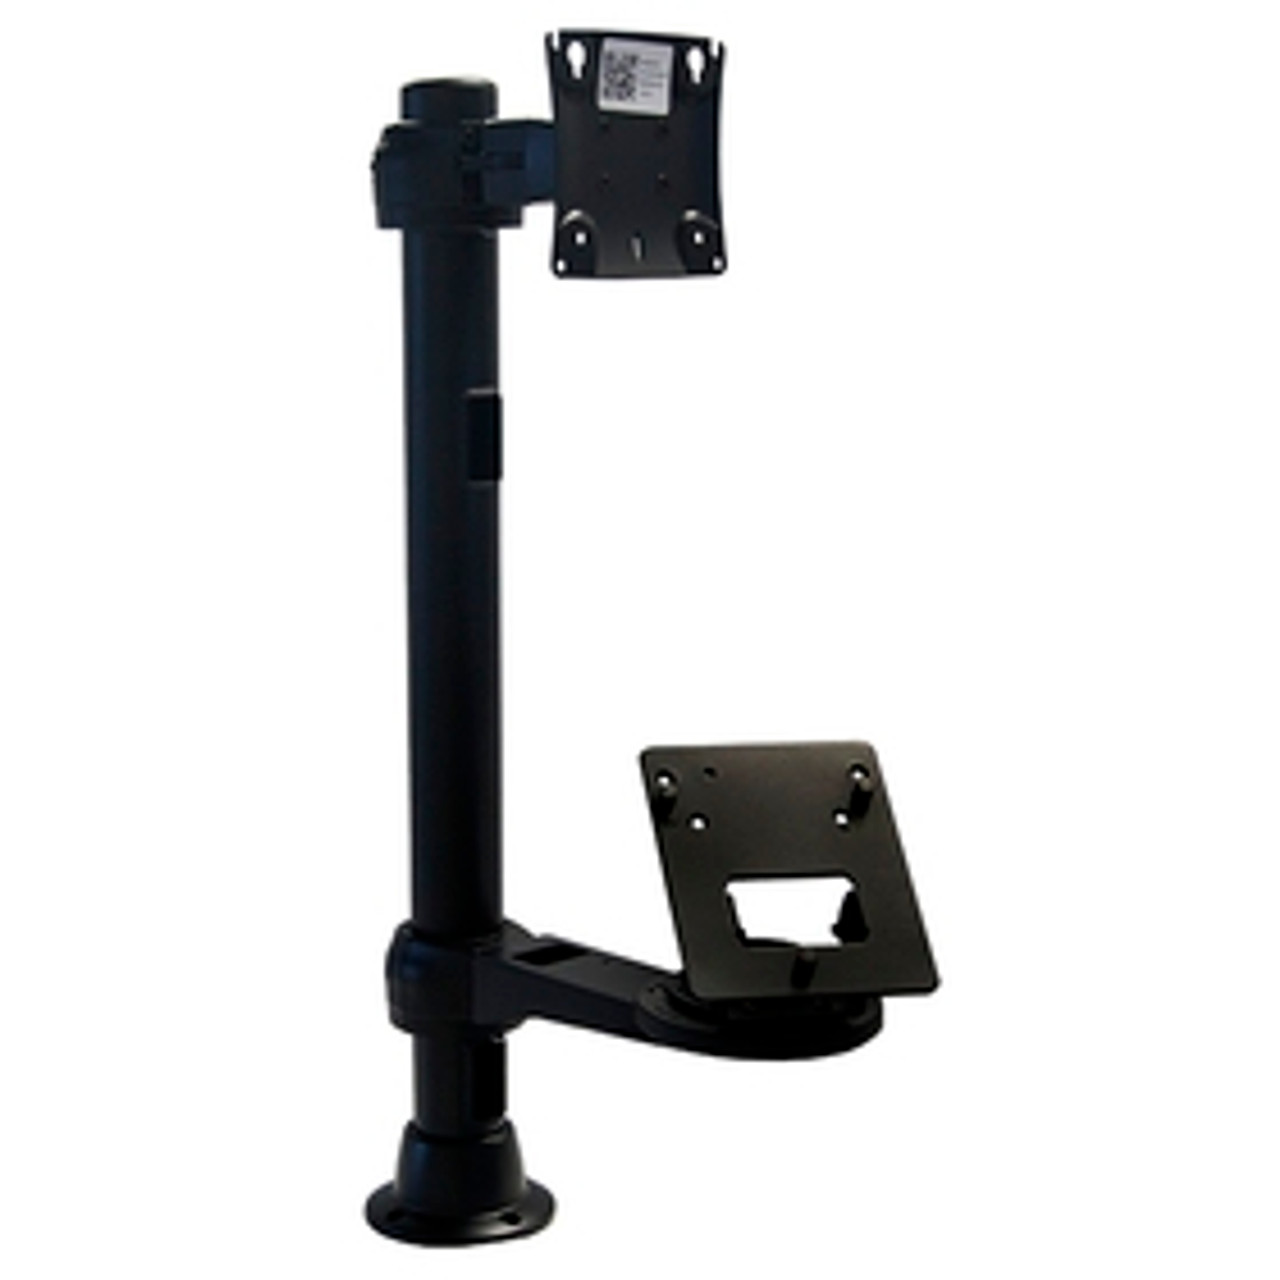 POS Ingenico isc250 Terminal Stand and Monitor Mount